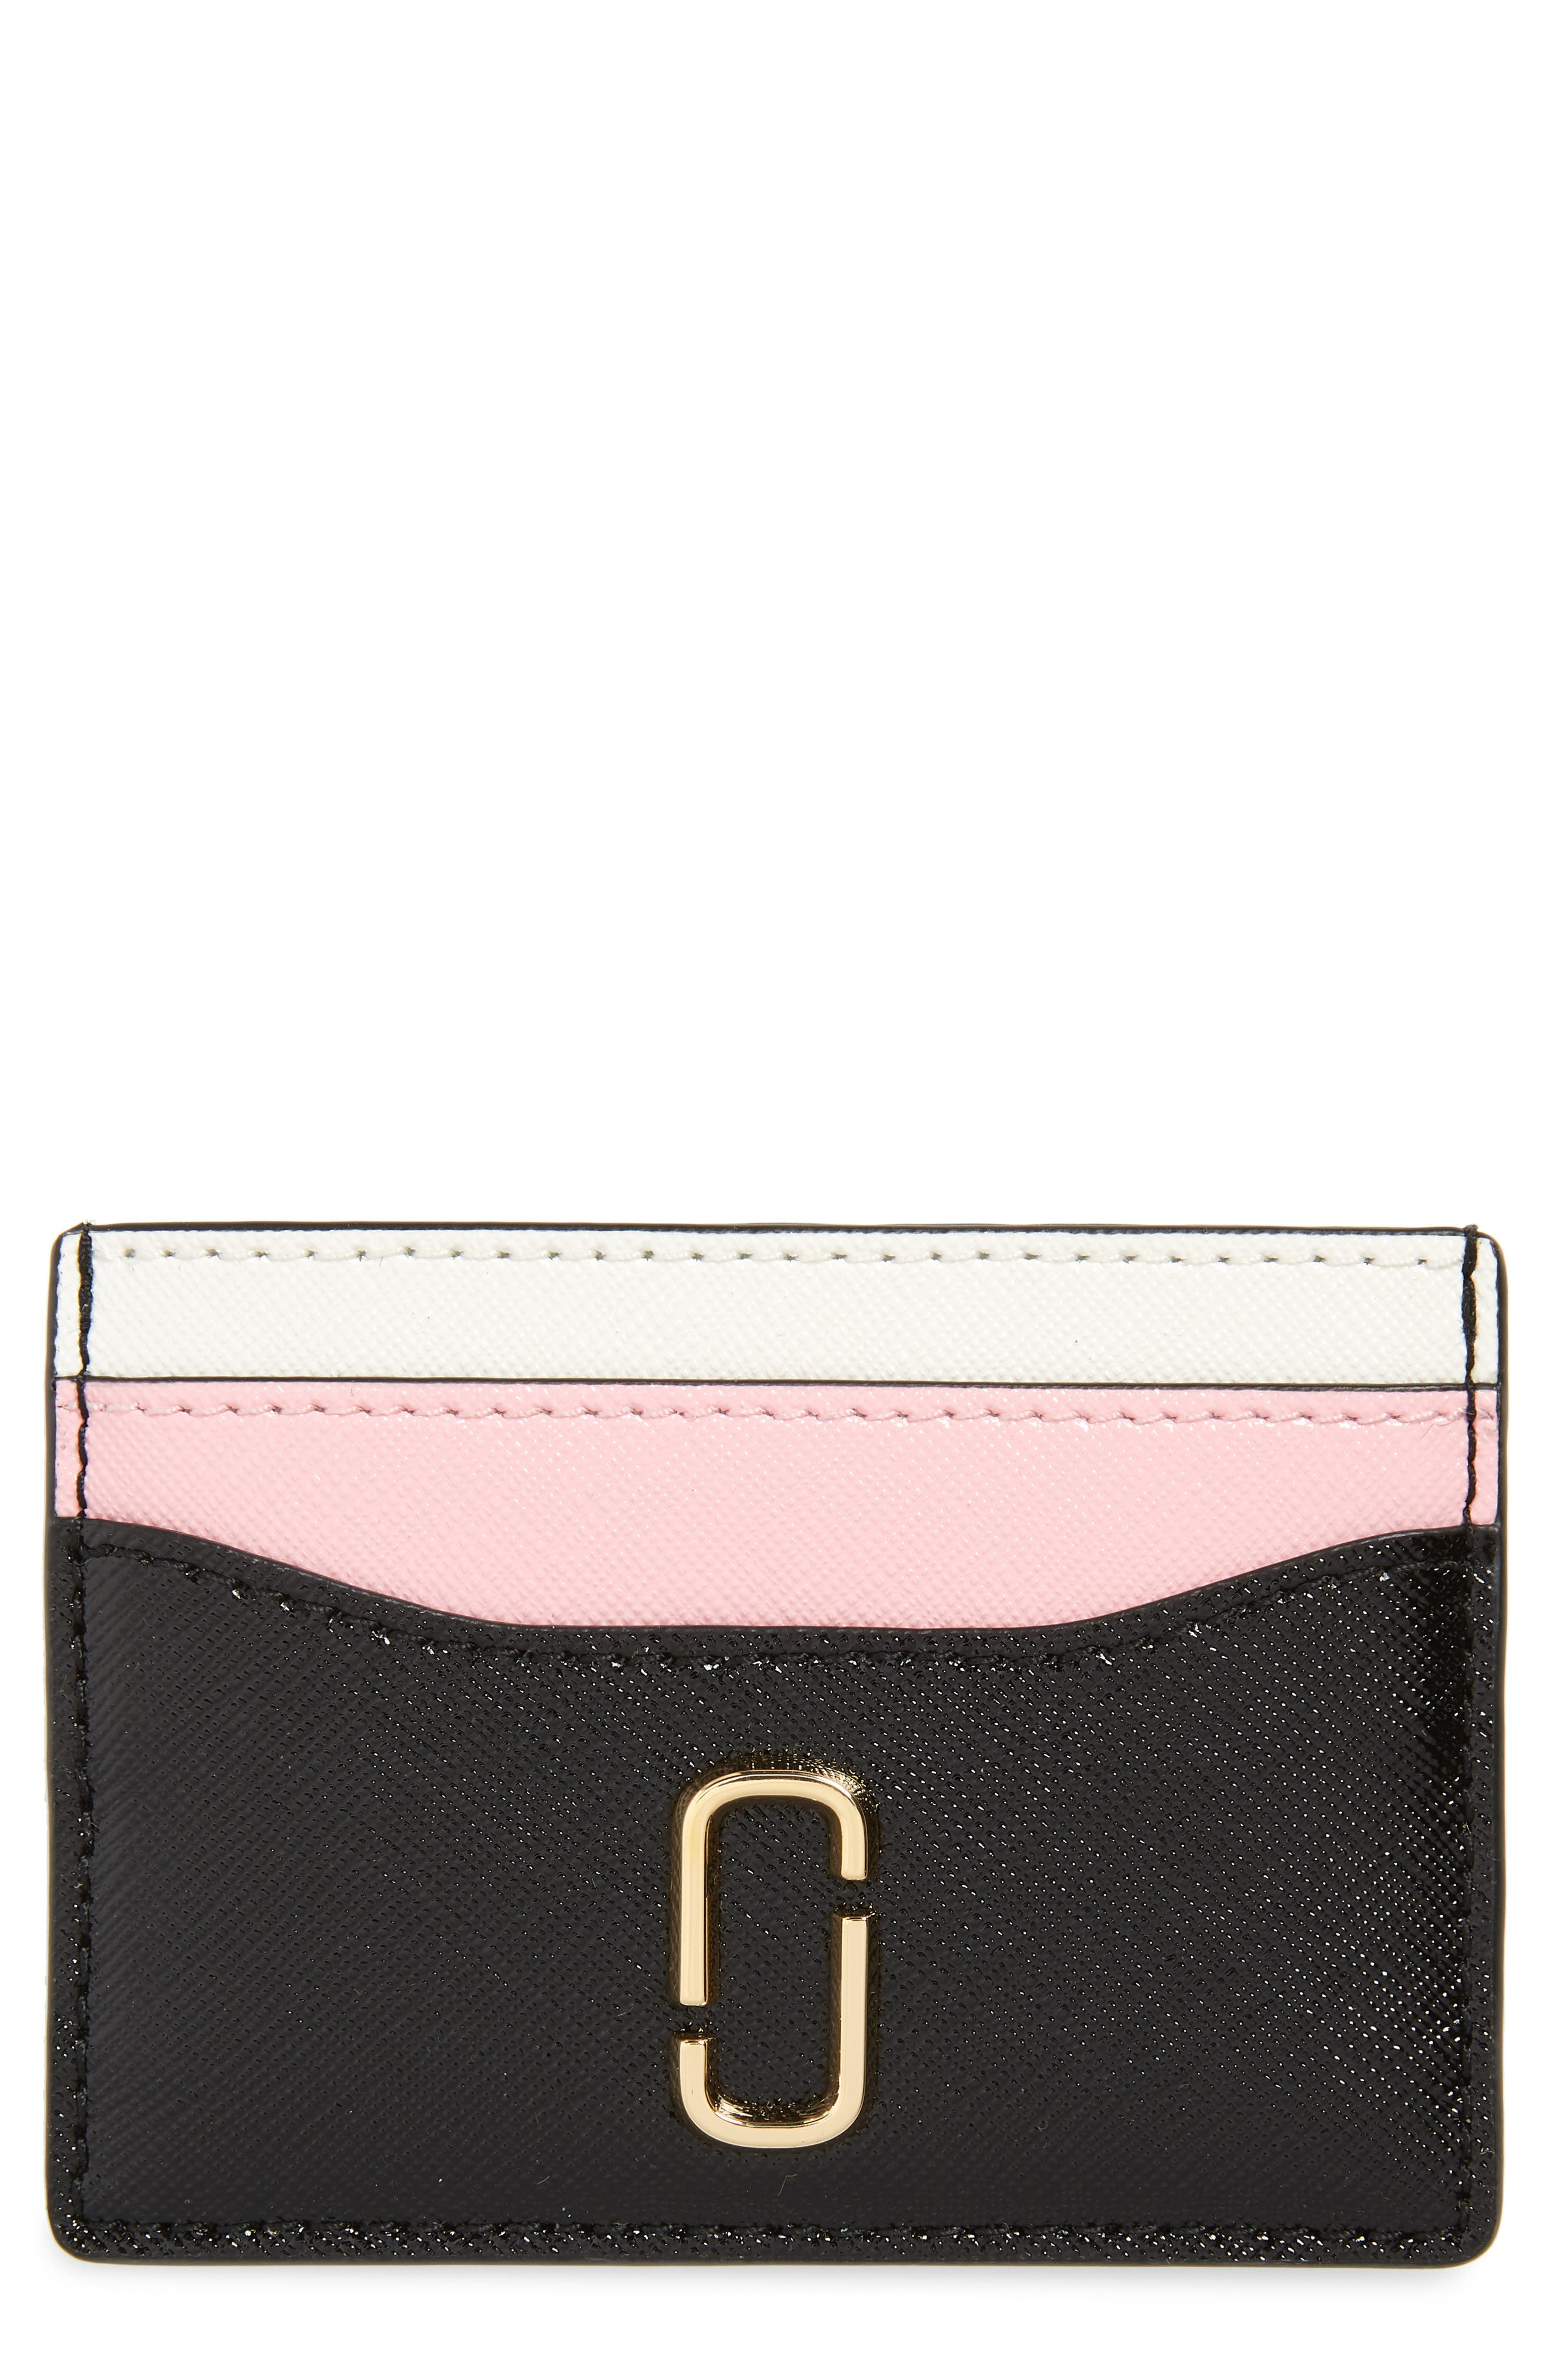 Snapshot Leather Card Case,                             Main thumbnail 1, color,                             Black/ Baby Pink